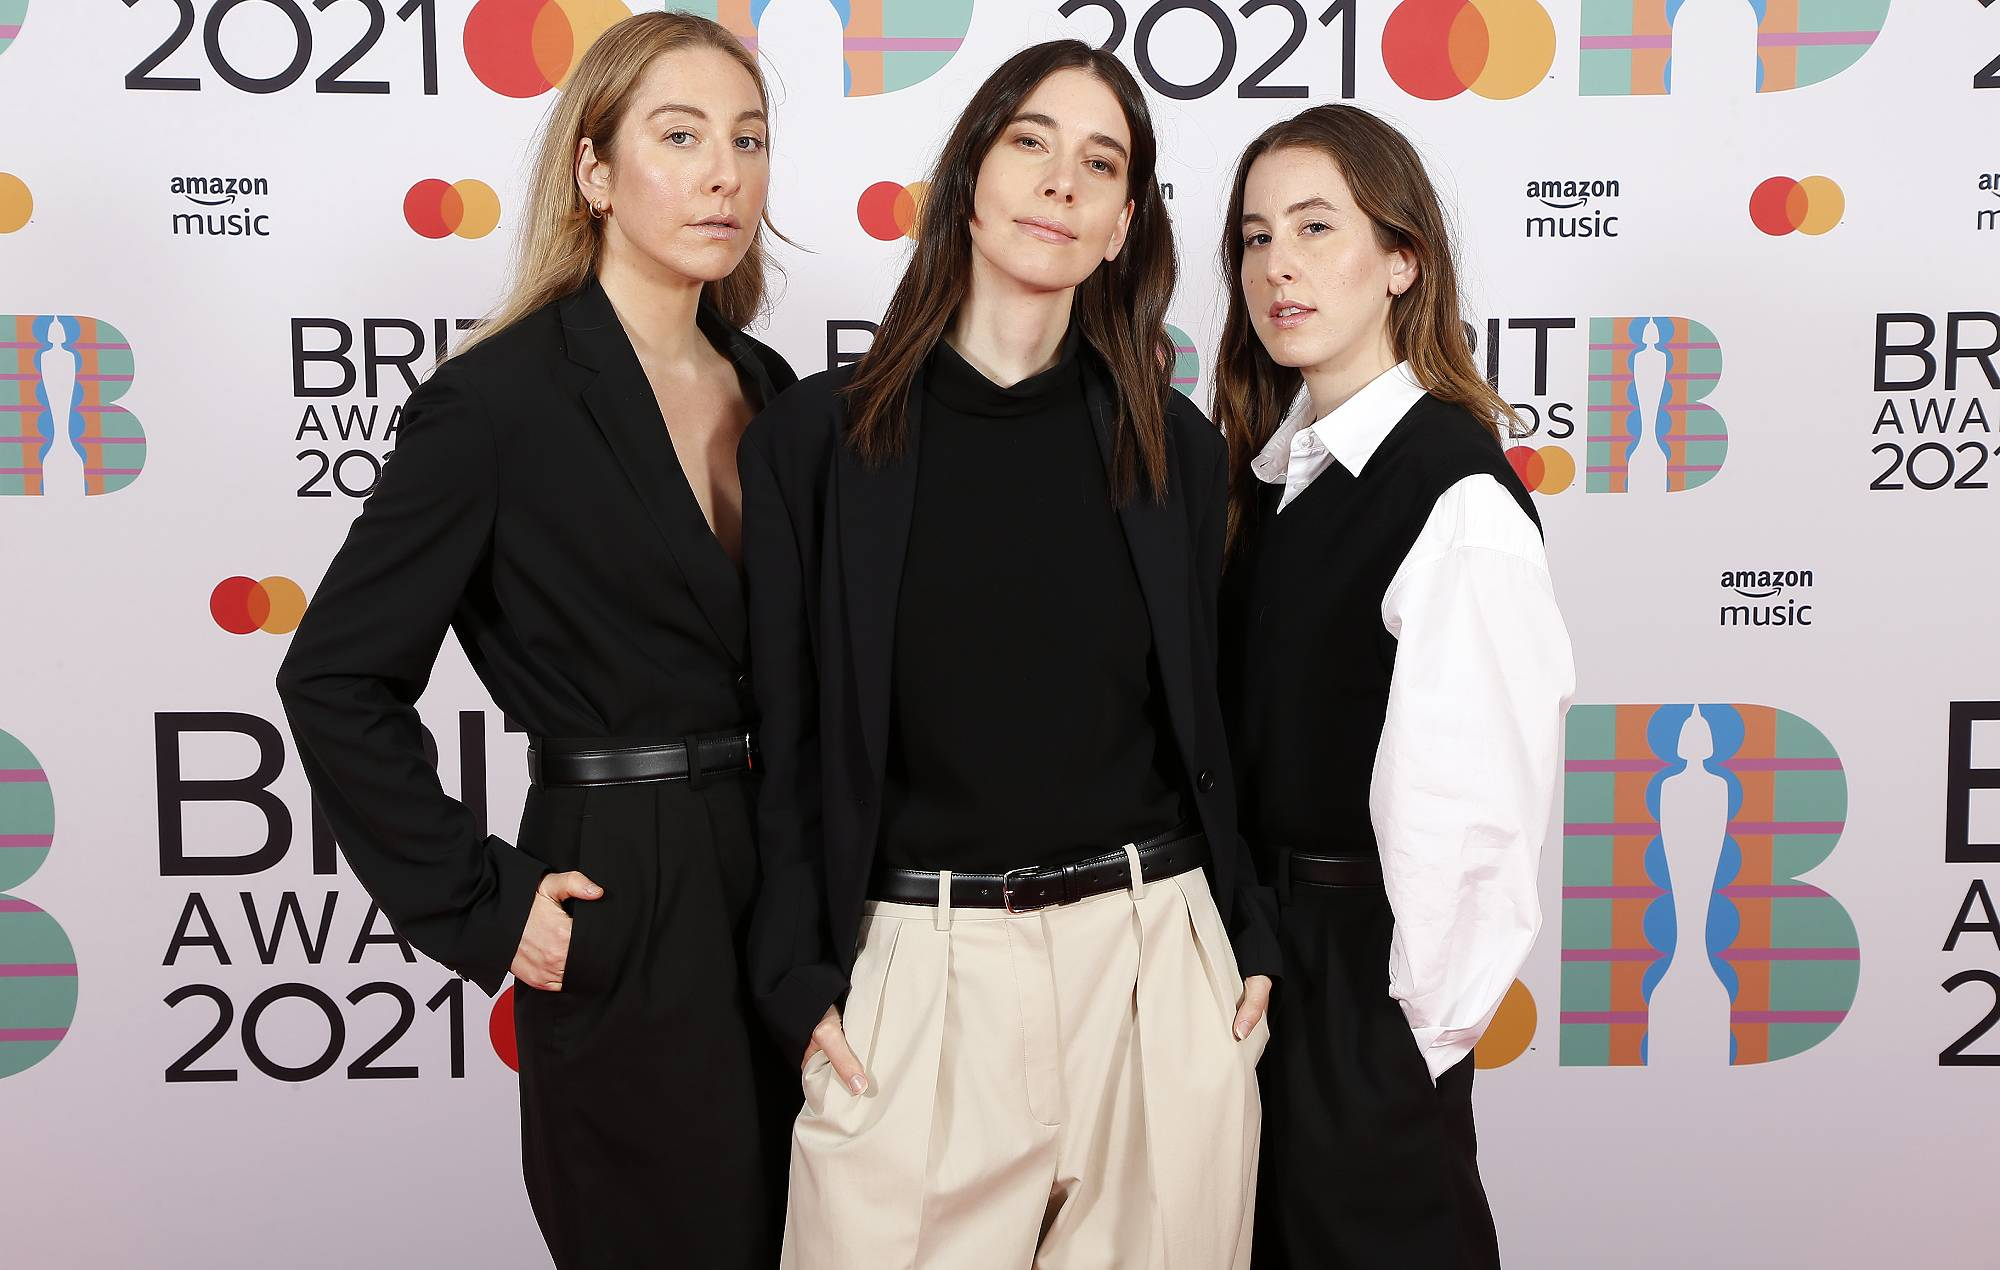 Este Haim, Danielle Haim,and Alana Haim of Haim pose in the media room during The BRIT Awards 2021 at The O2 Arena on May 11, 2021 in London, England. (Photo by JMEnternational/JMEnternational for BRIT Awards/Getty Images)